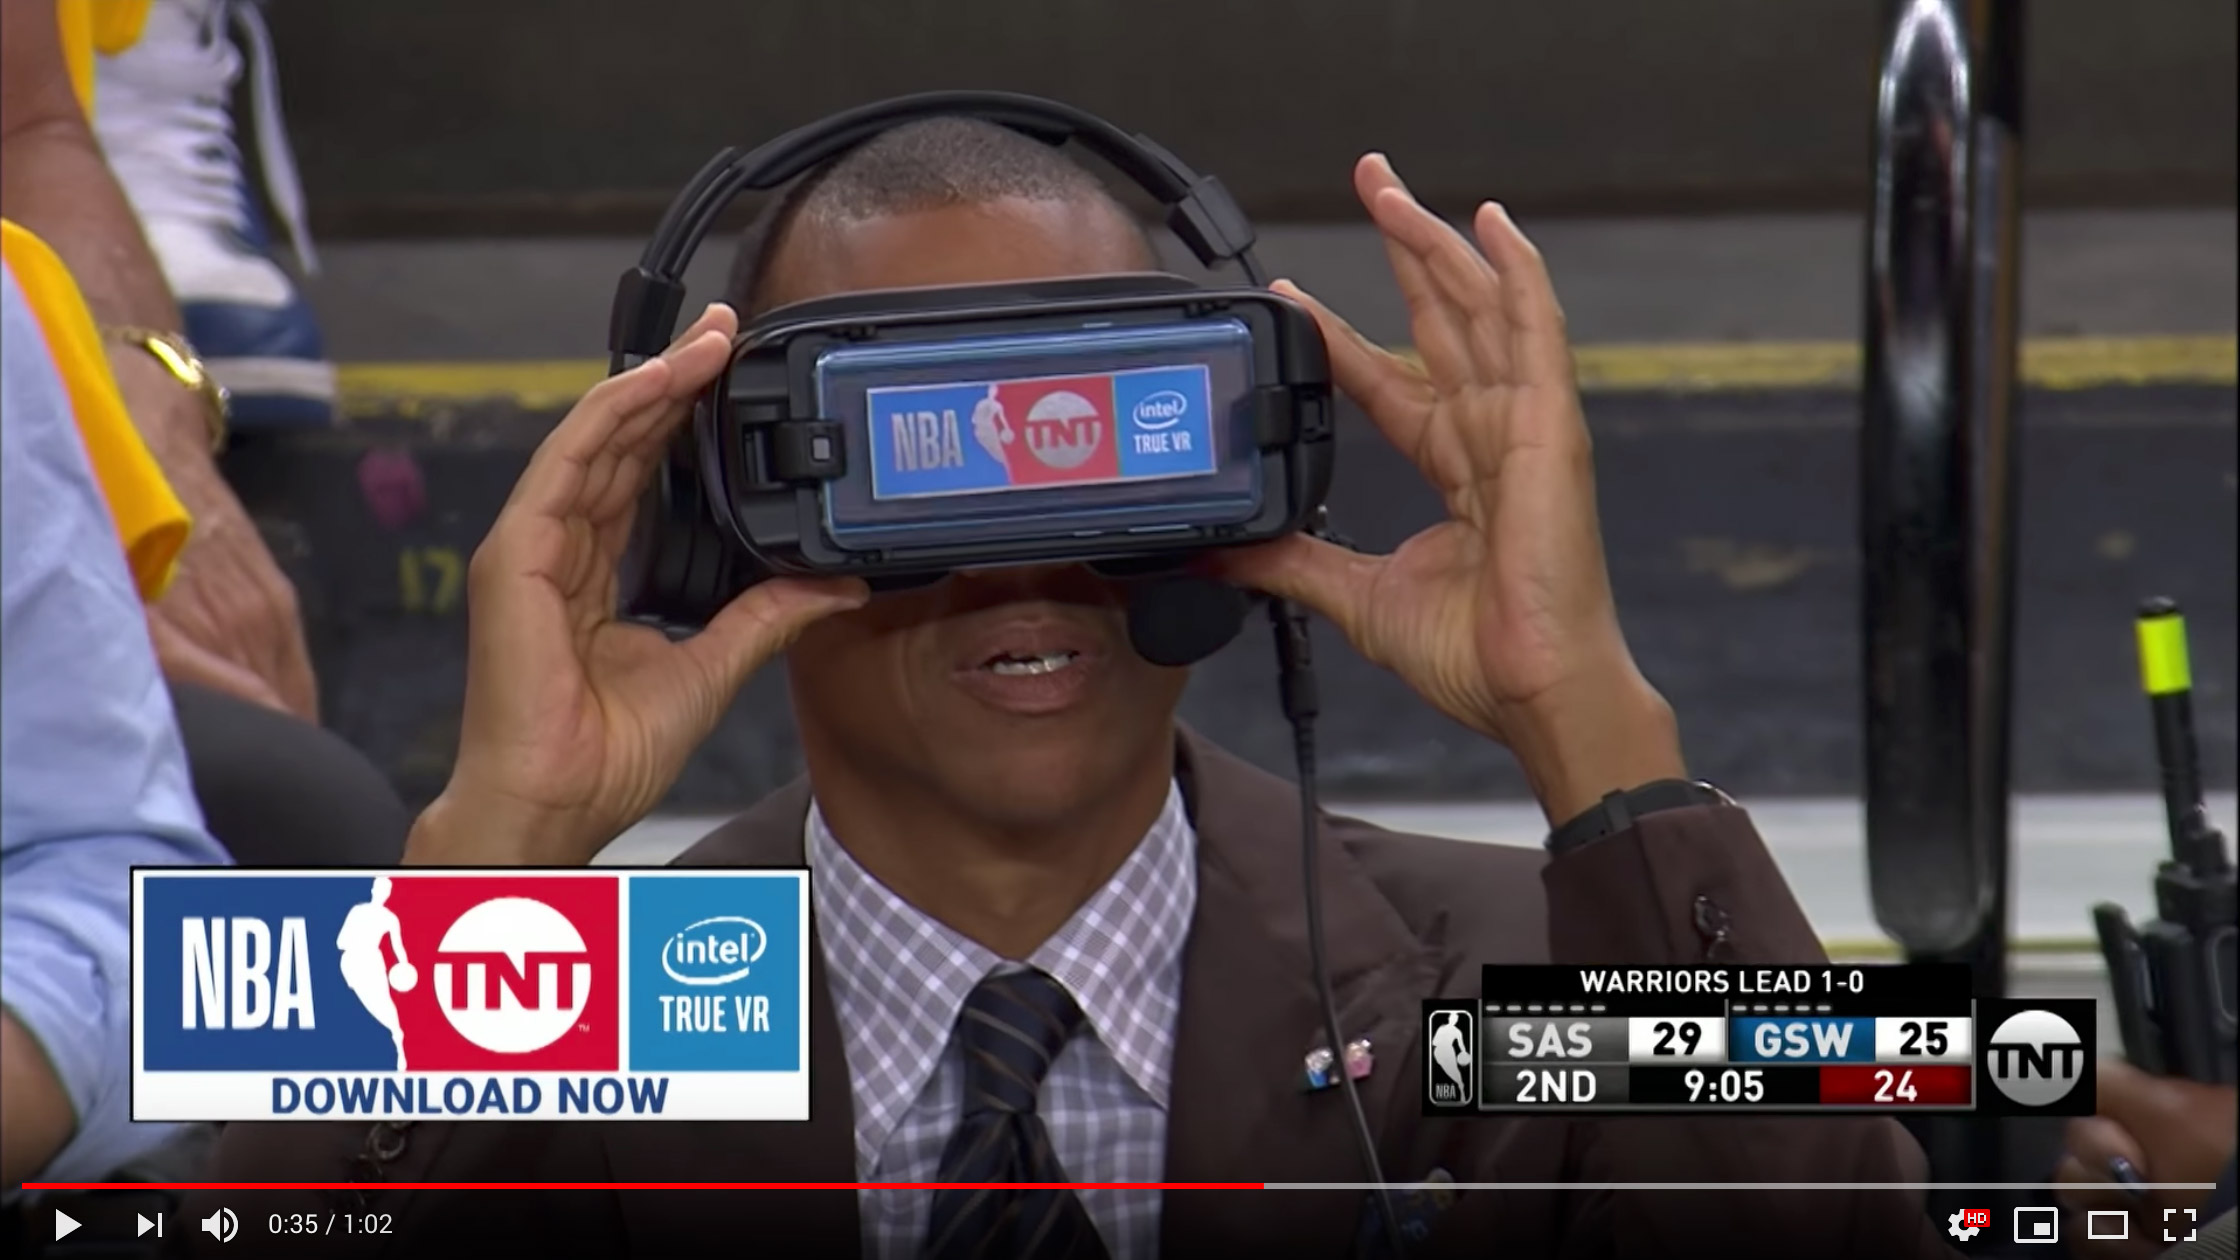 Reggie Miller checking out the virtual goods